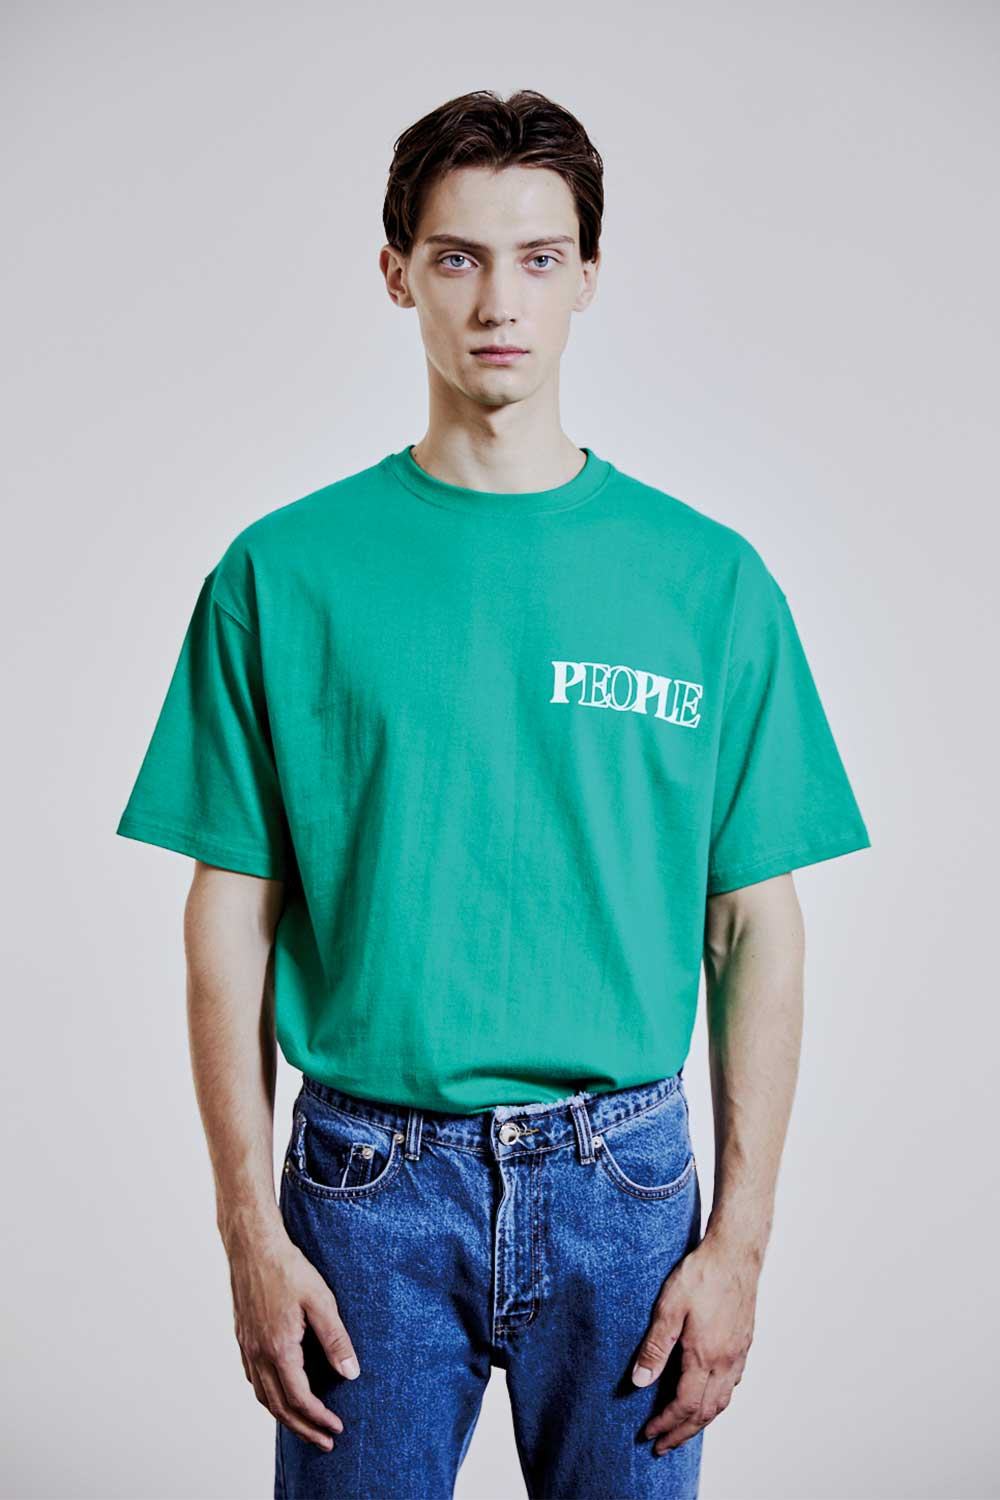 10TH ARCHIVE SIMPLE GREEN LOGO T-SHIRTS